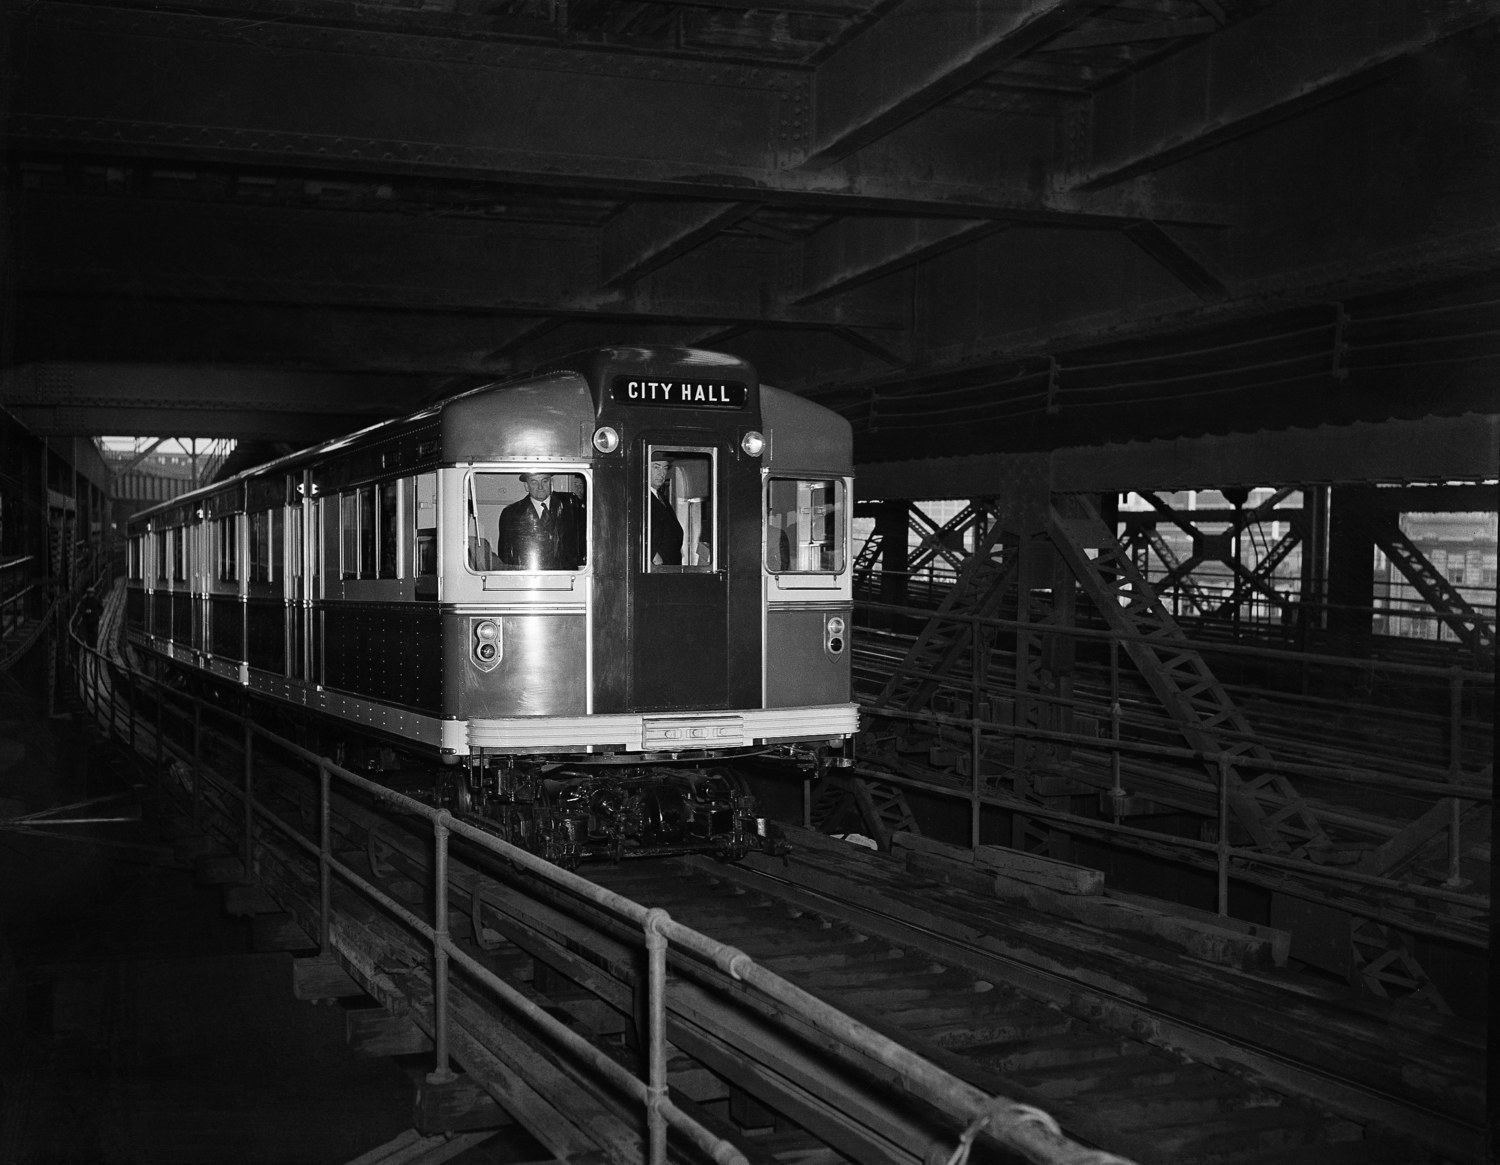 "The new streamlined red, white and blue Rapid Transit car which made its ""maiden voyage"" along the BMT lines in New York, March 28, 1939. It weighs 76,000 pounds, about half the weight of the conventional cars, and is equipped with special sound-deadening and shock-cushioning devices."